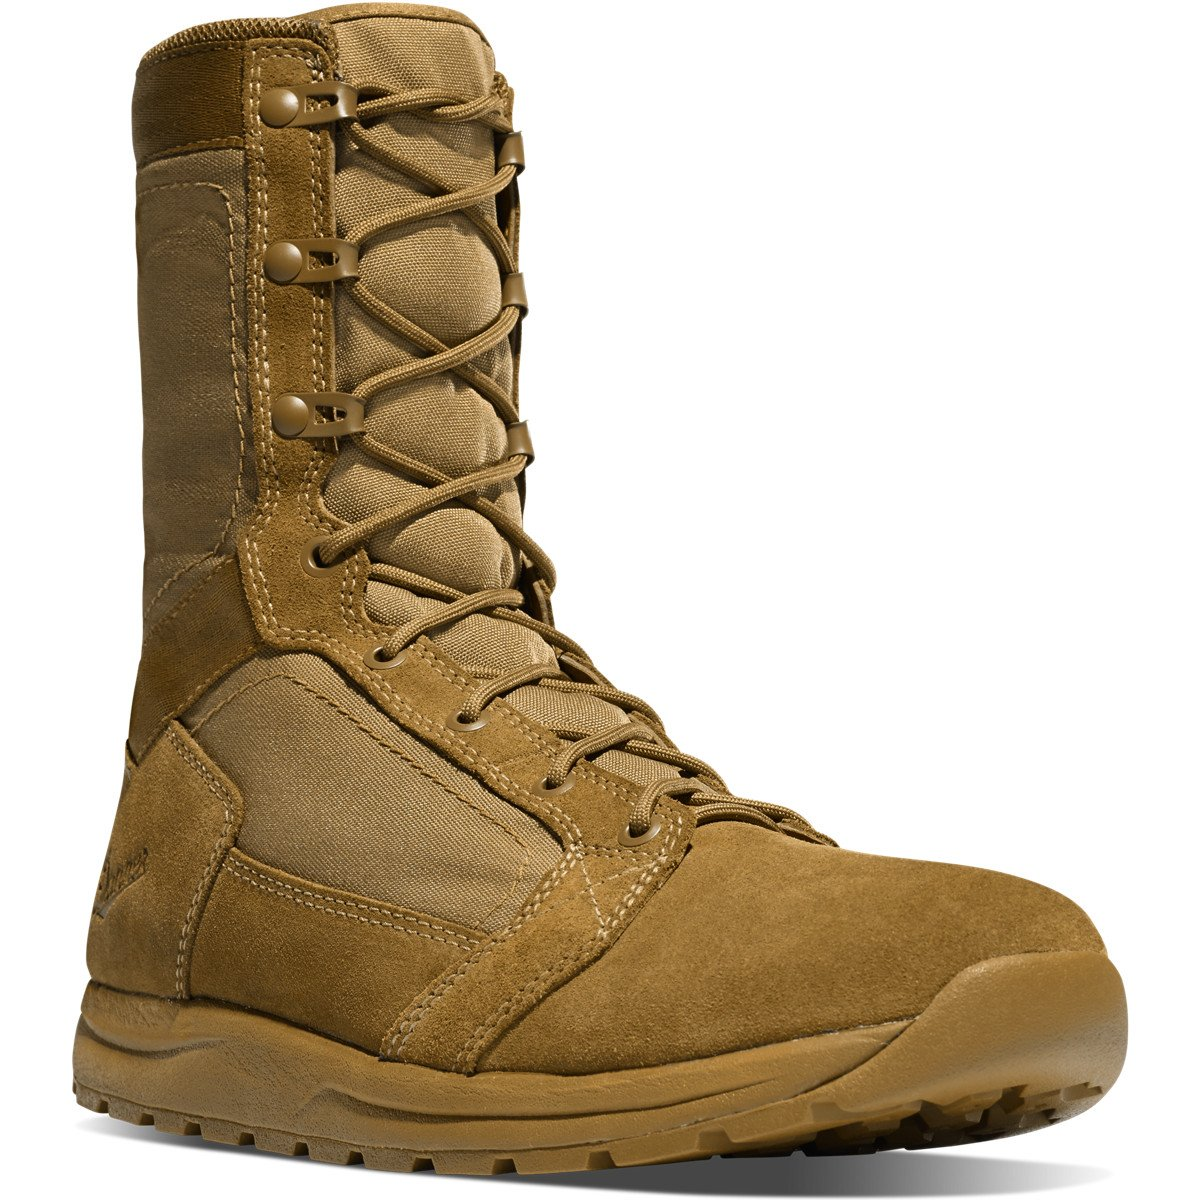 Danner Tachyon Military Tactical Coyote